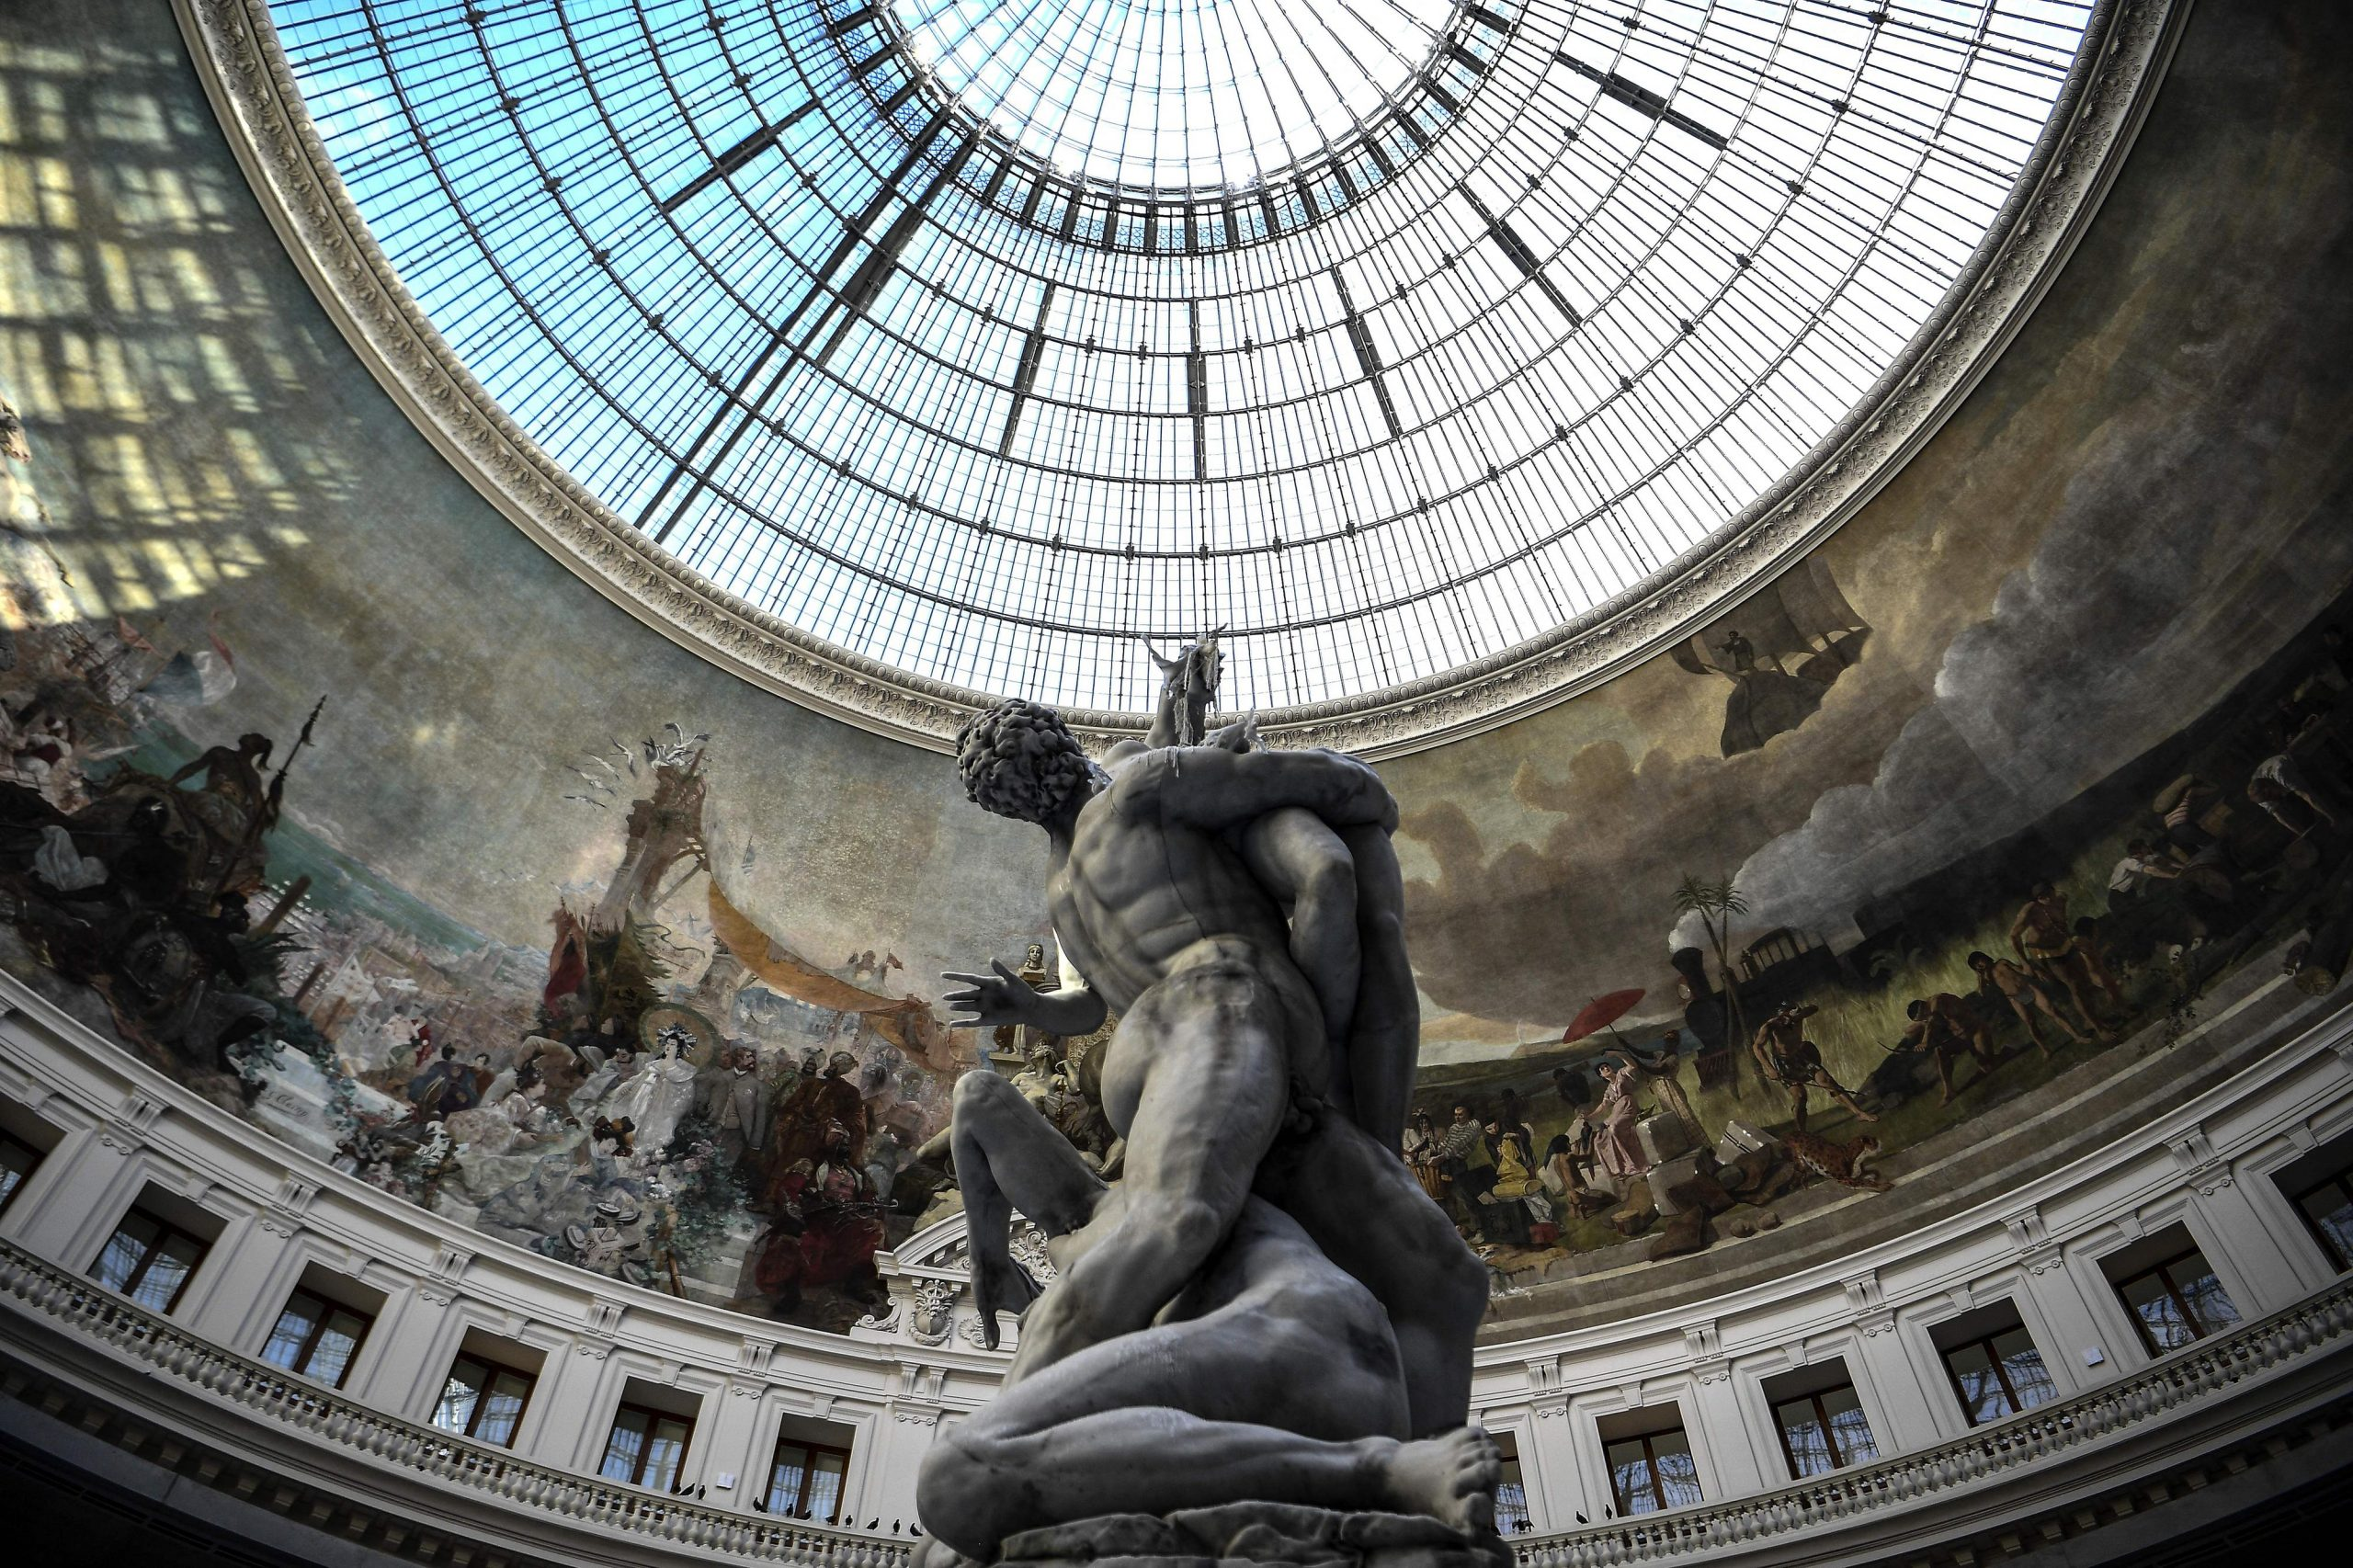 """A picture taken on May 22, 2021 shows a partially-melted wax sculpture by Swiss artist Urs Fischer, depicting a replica of the marble sculpture by Italian artist Giambologna """"The Rape of the Sabine Women"""", after its wick was lit at the Bourse de Commerce-Pinault Collection, which houses French billionaire Francois Pinault's private art collection in Paris."""